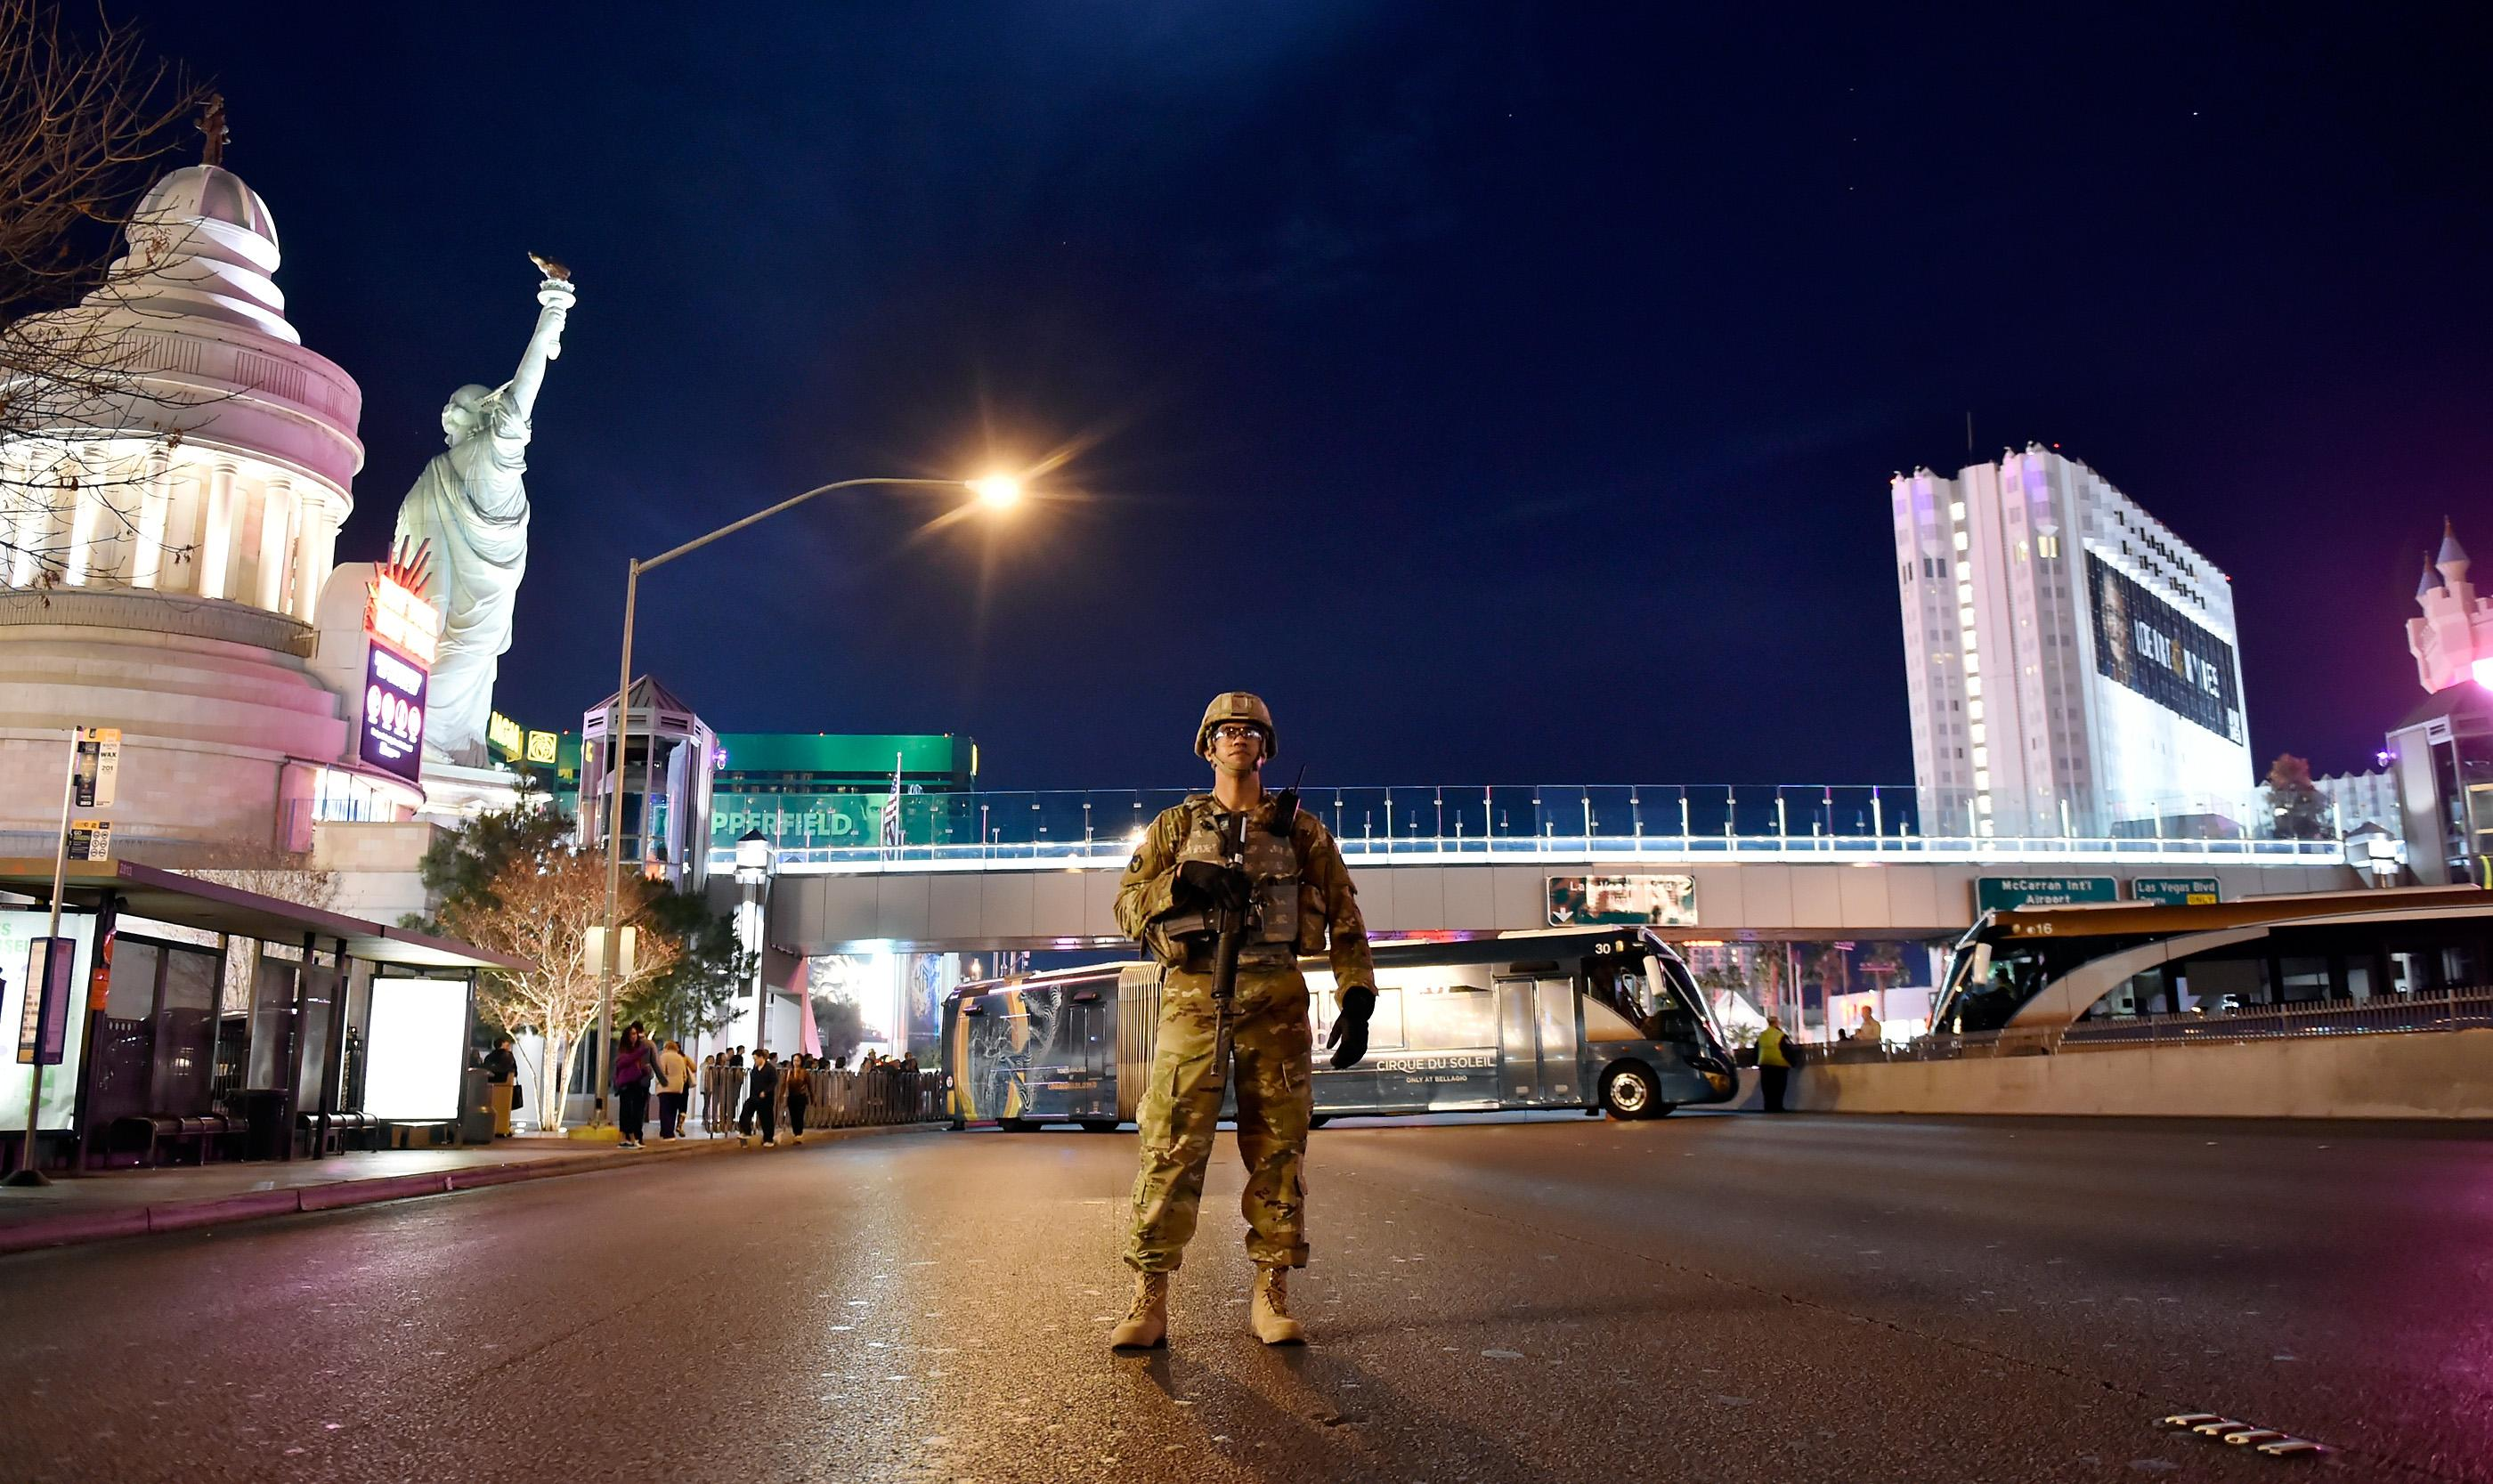 A member of the Nevada Army National Guard patrols Tropicana Boulevard during the New Year's Eve celebration along the Las Vegas Strip Sunday, Dec. 31, 2017, in Las Vegas. CREDIT: David Becker/Las Vegas News Bureau